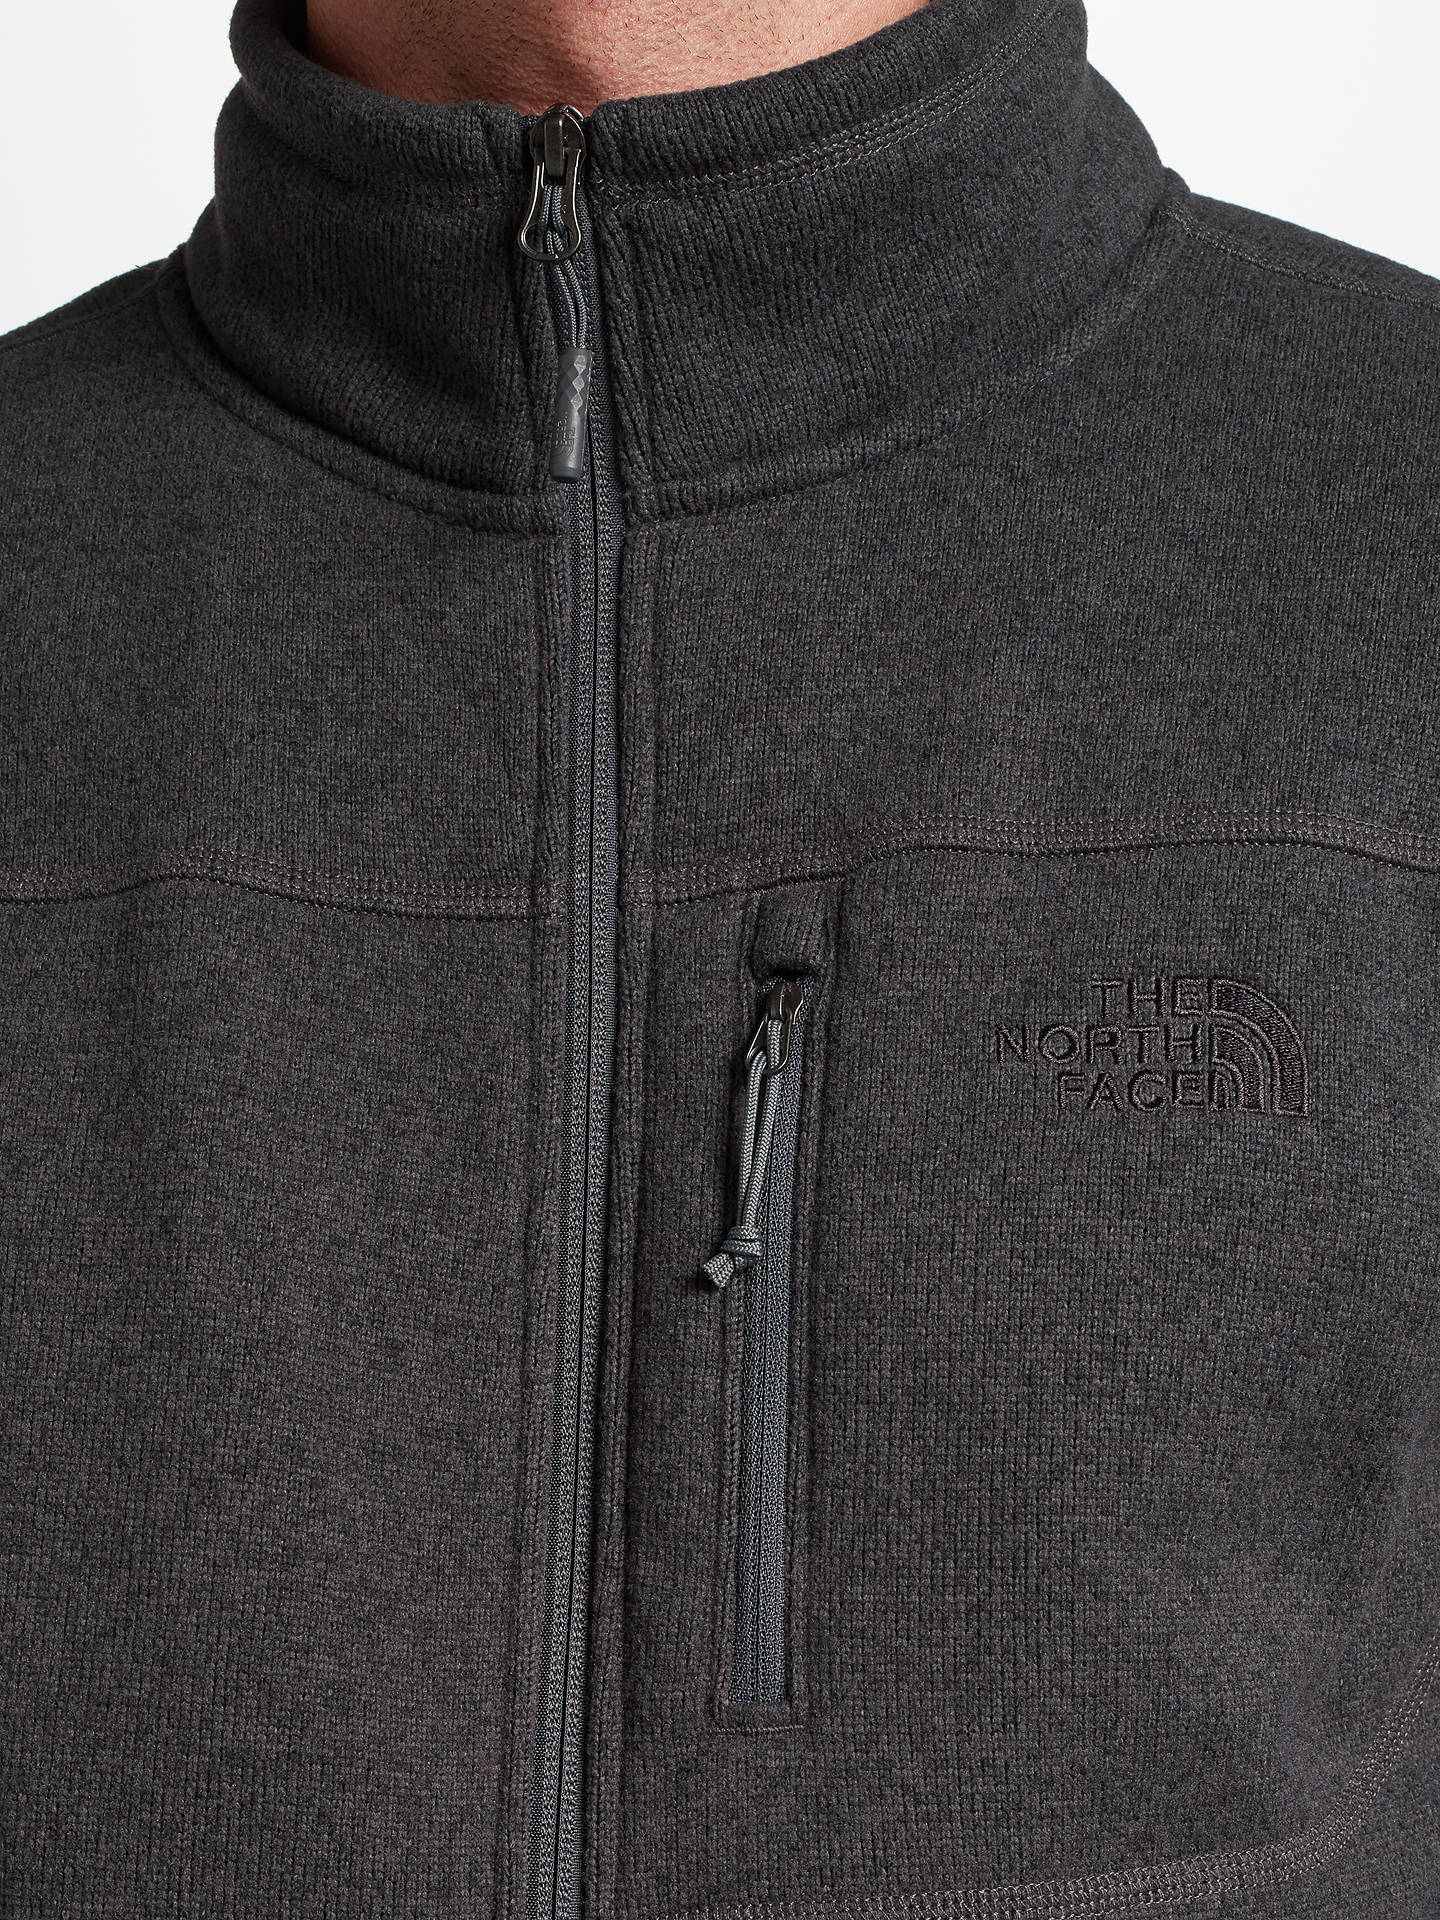 Buy The North Face Gordon Lyons Full Zip Men's Fleece Jacket, Grey, S Online at johnlewis.com